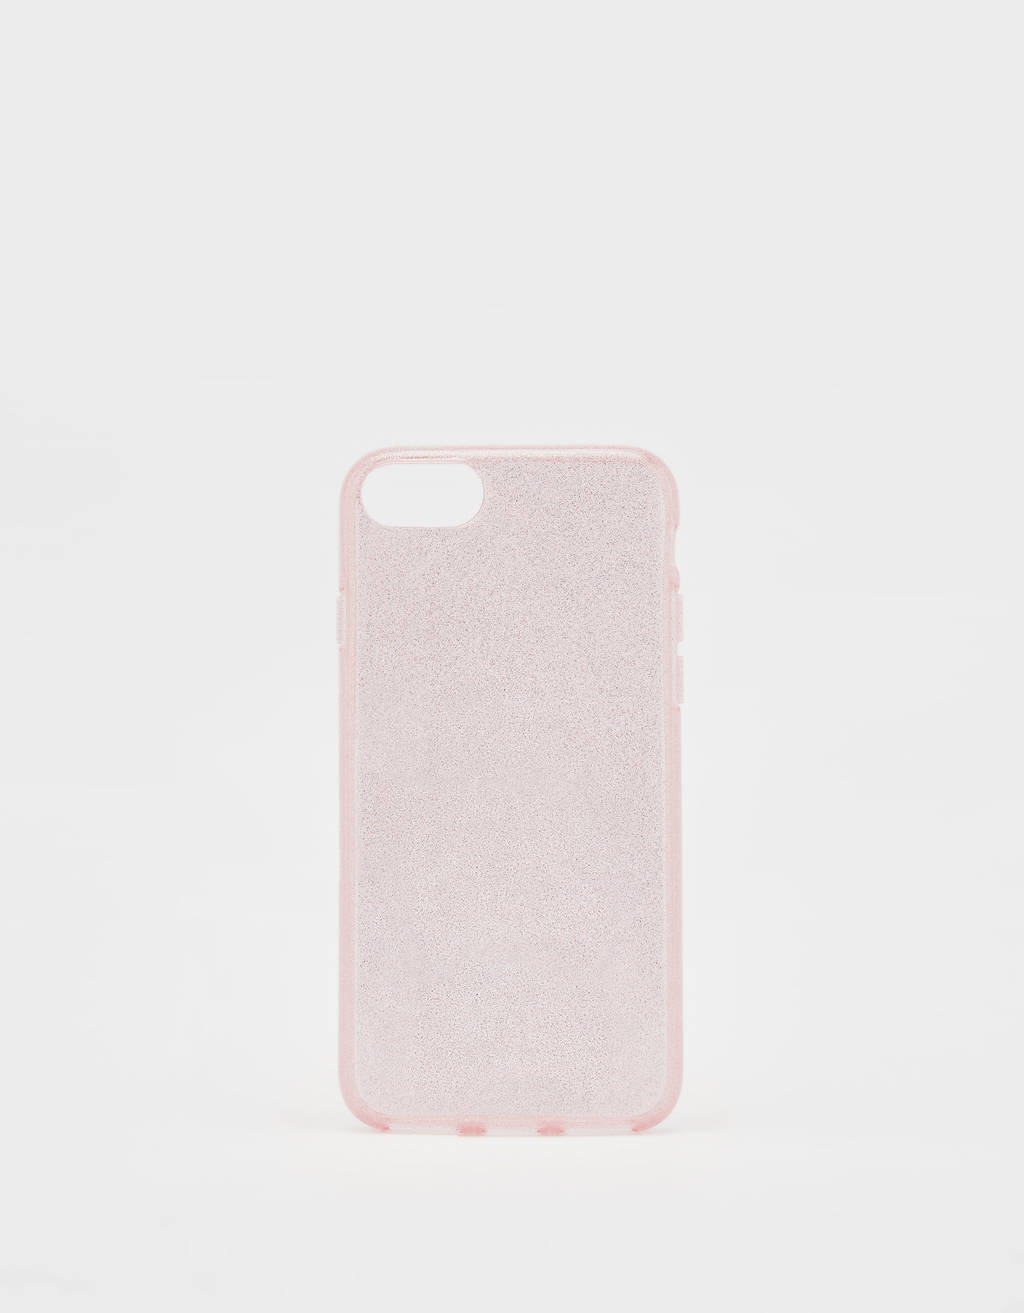 Carcasa con purpurina iPhone 6 / 7 / 8